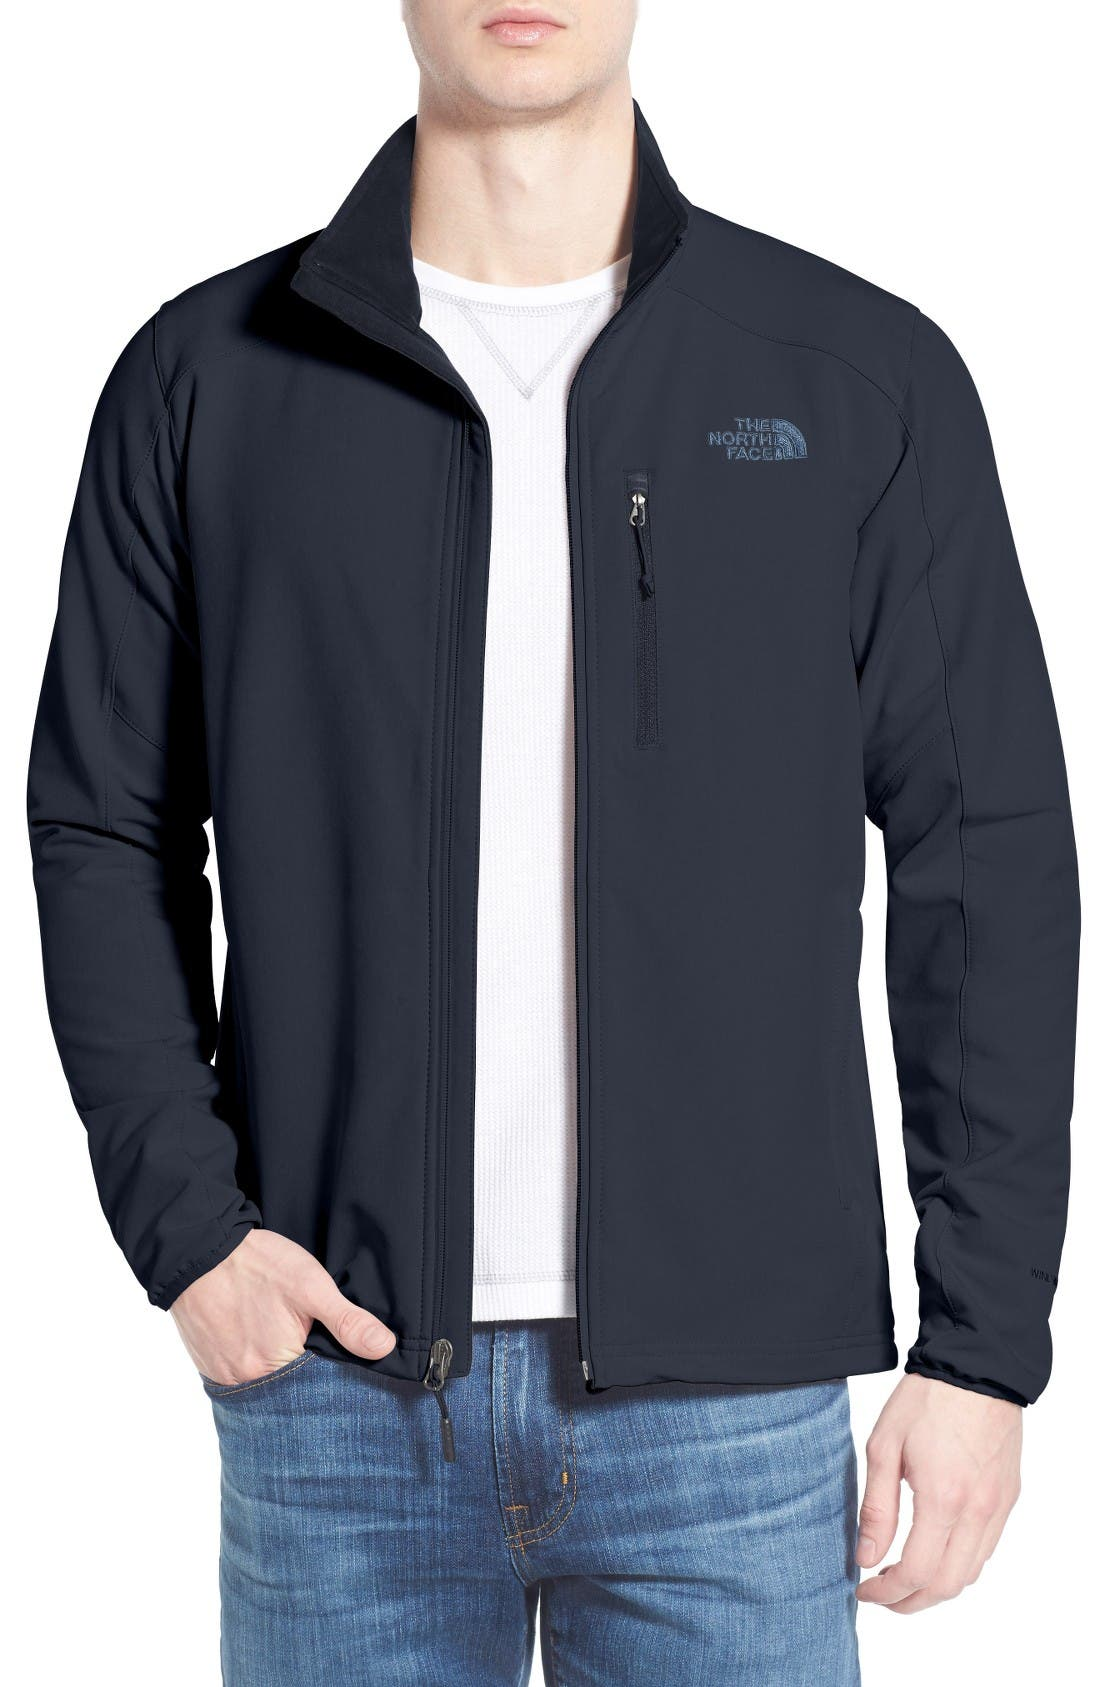 Main Image - The North Face Apex Pneumatic Jacket